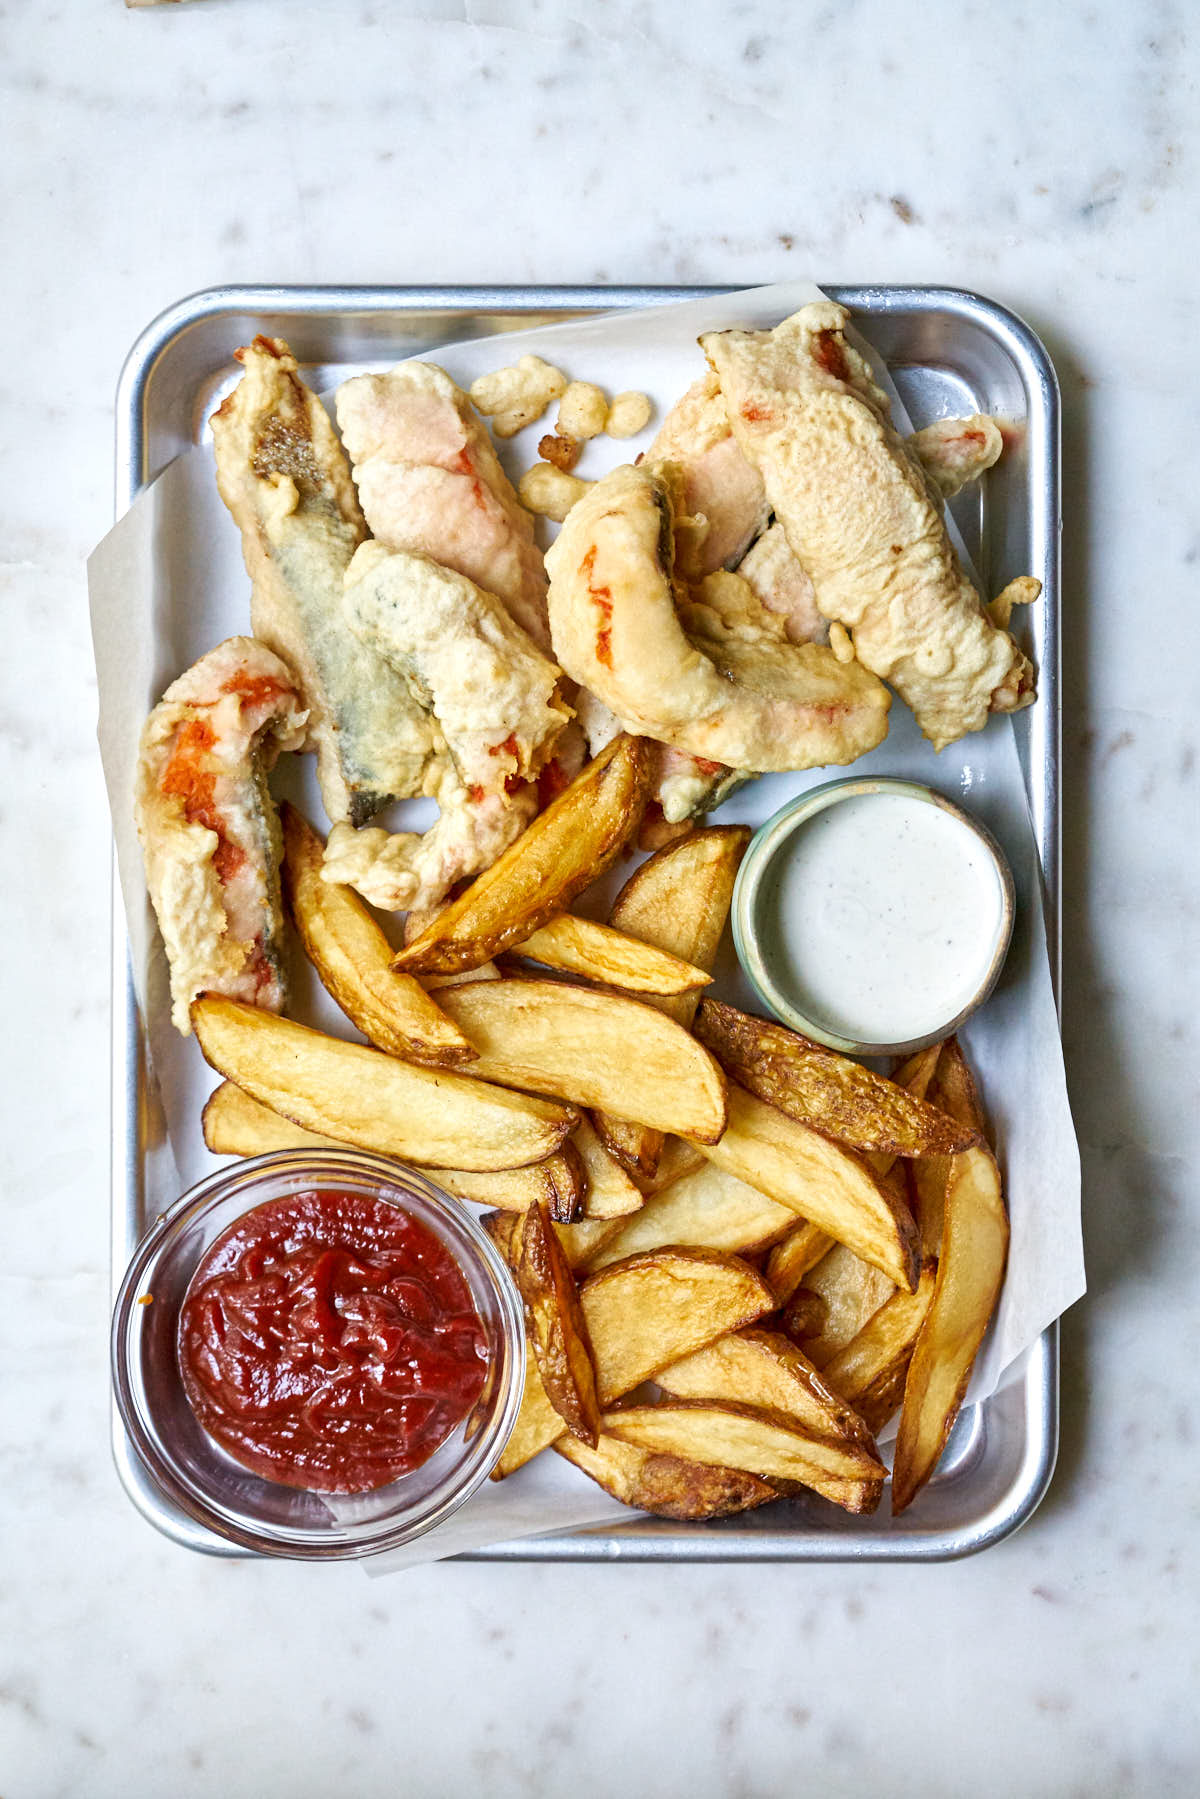 Fish and chips on a tray with tartar and ketchup.